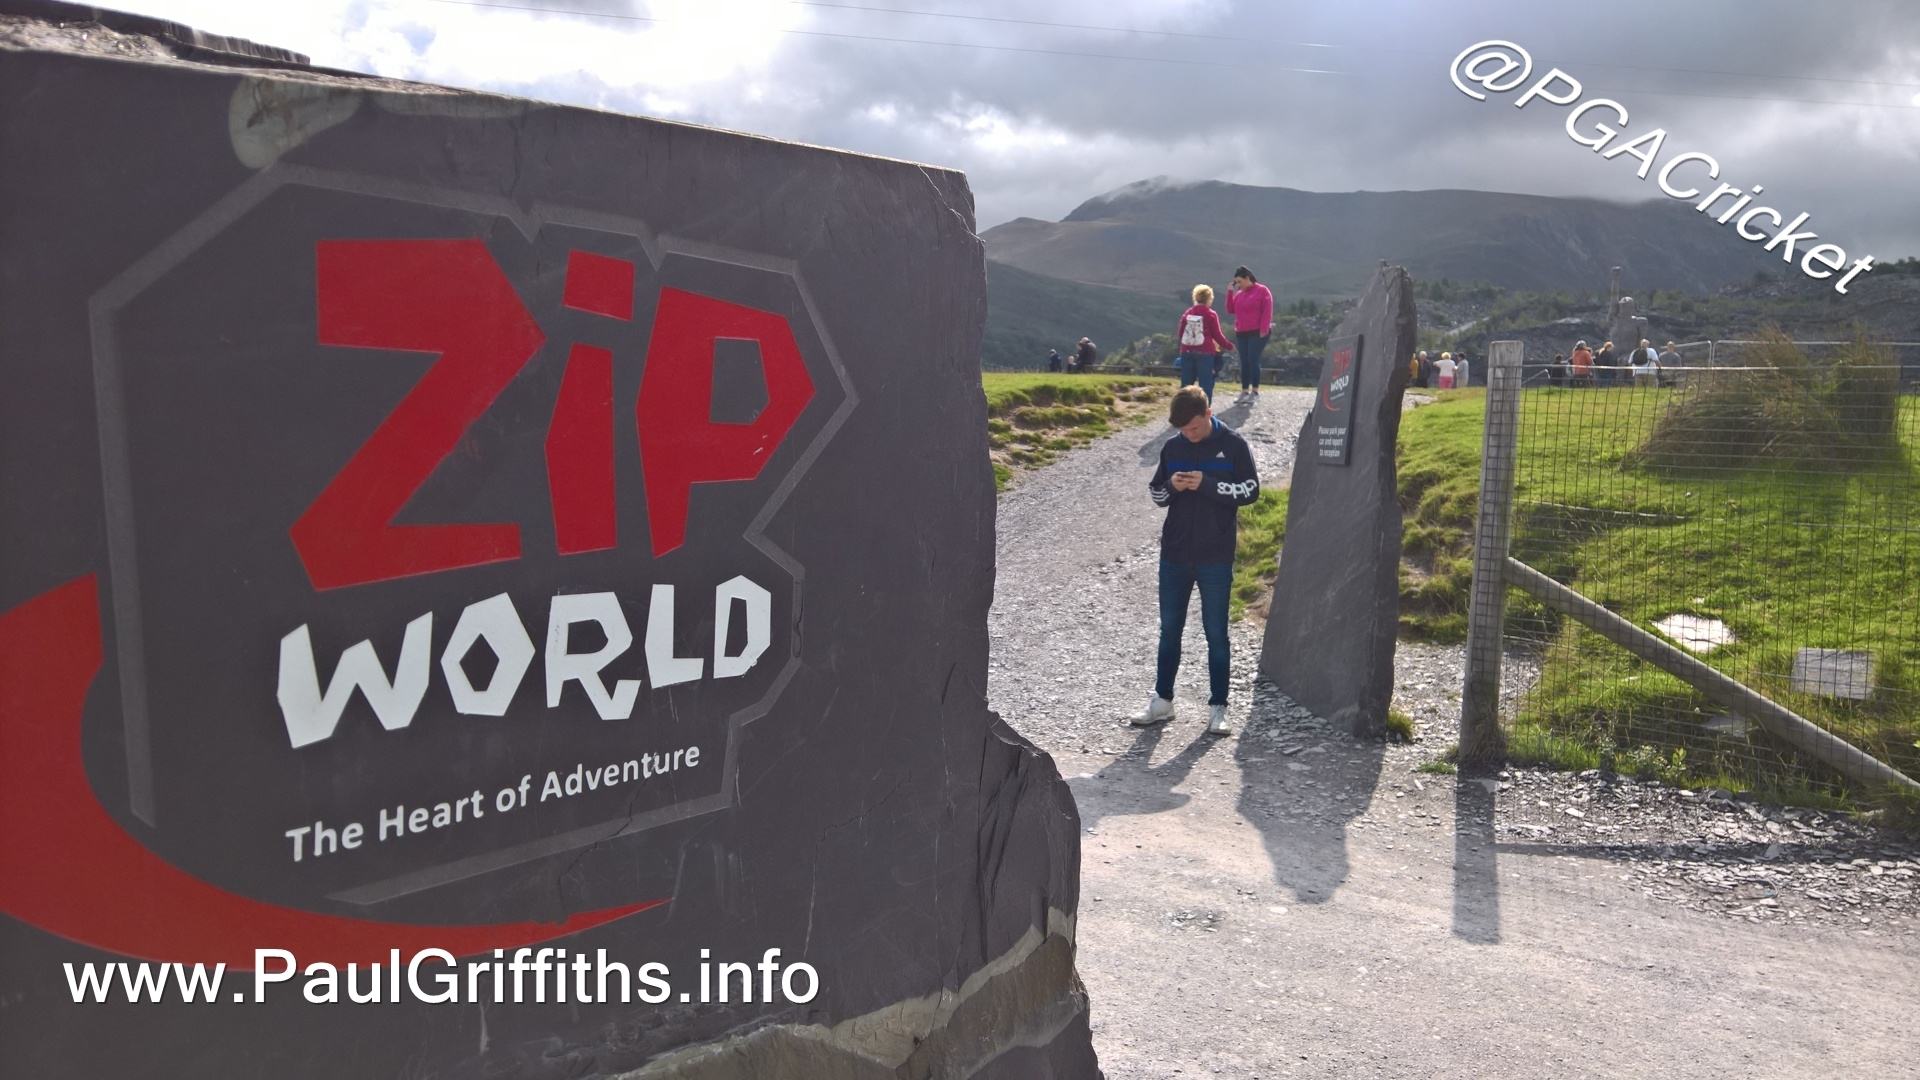 World\'s Fastest Zip Wire - Paul Griffiths